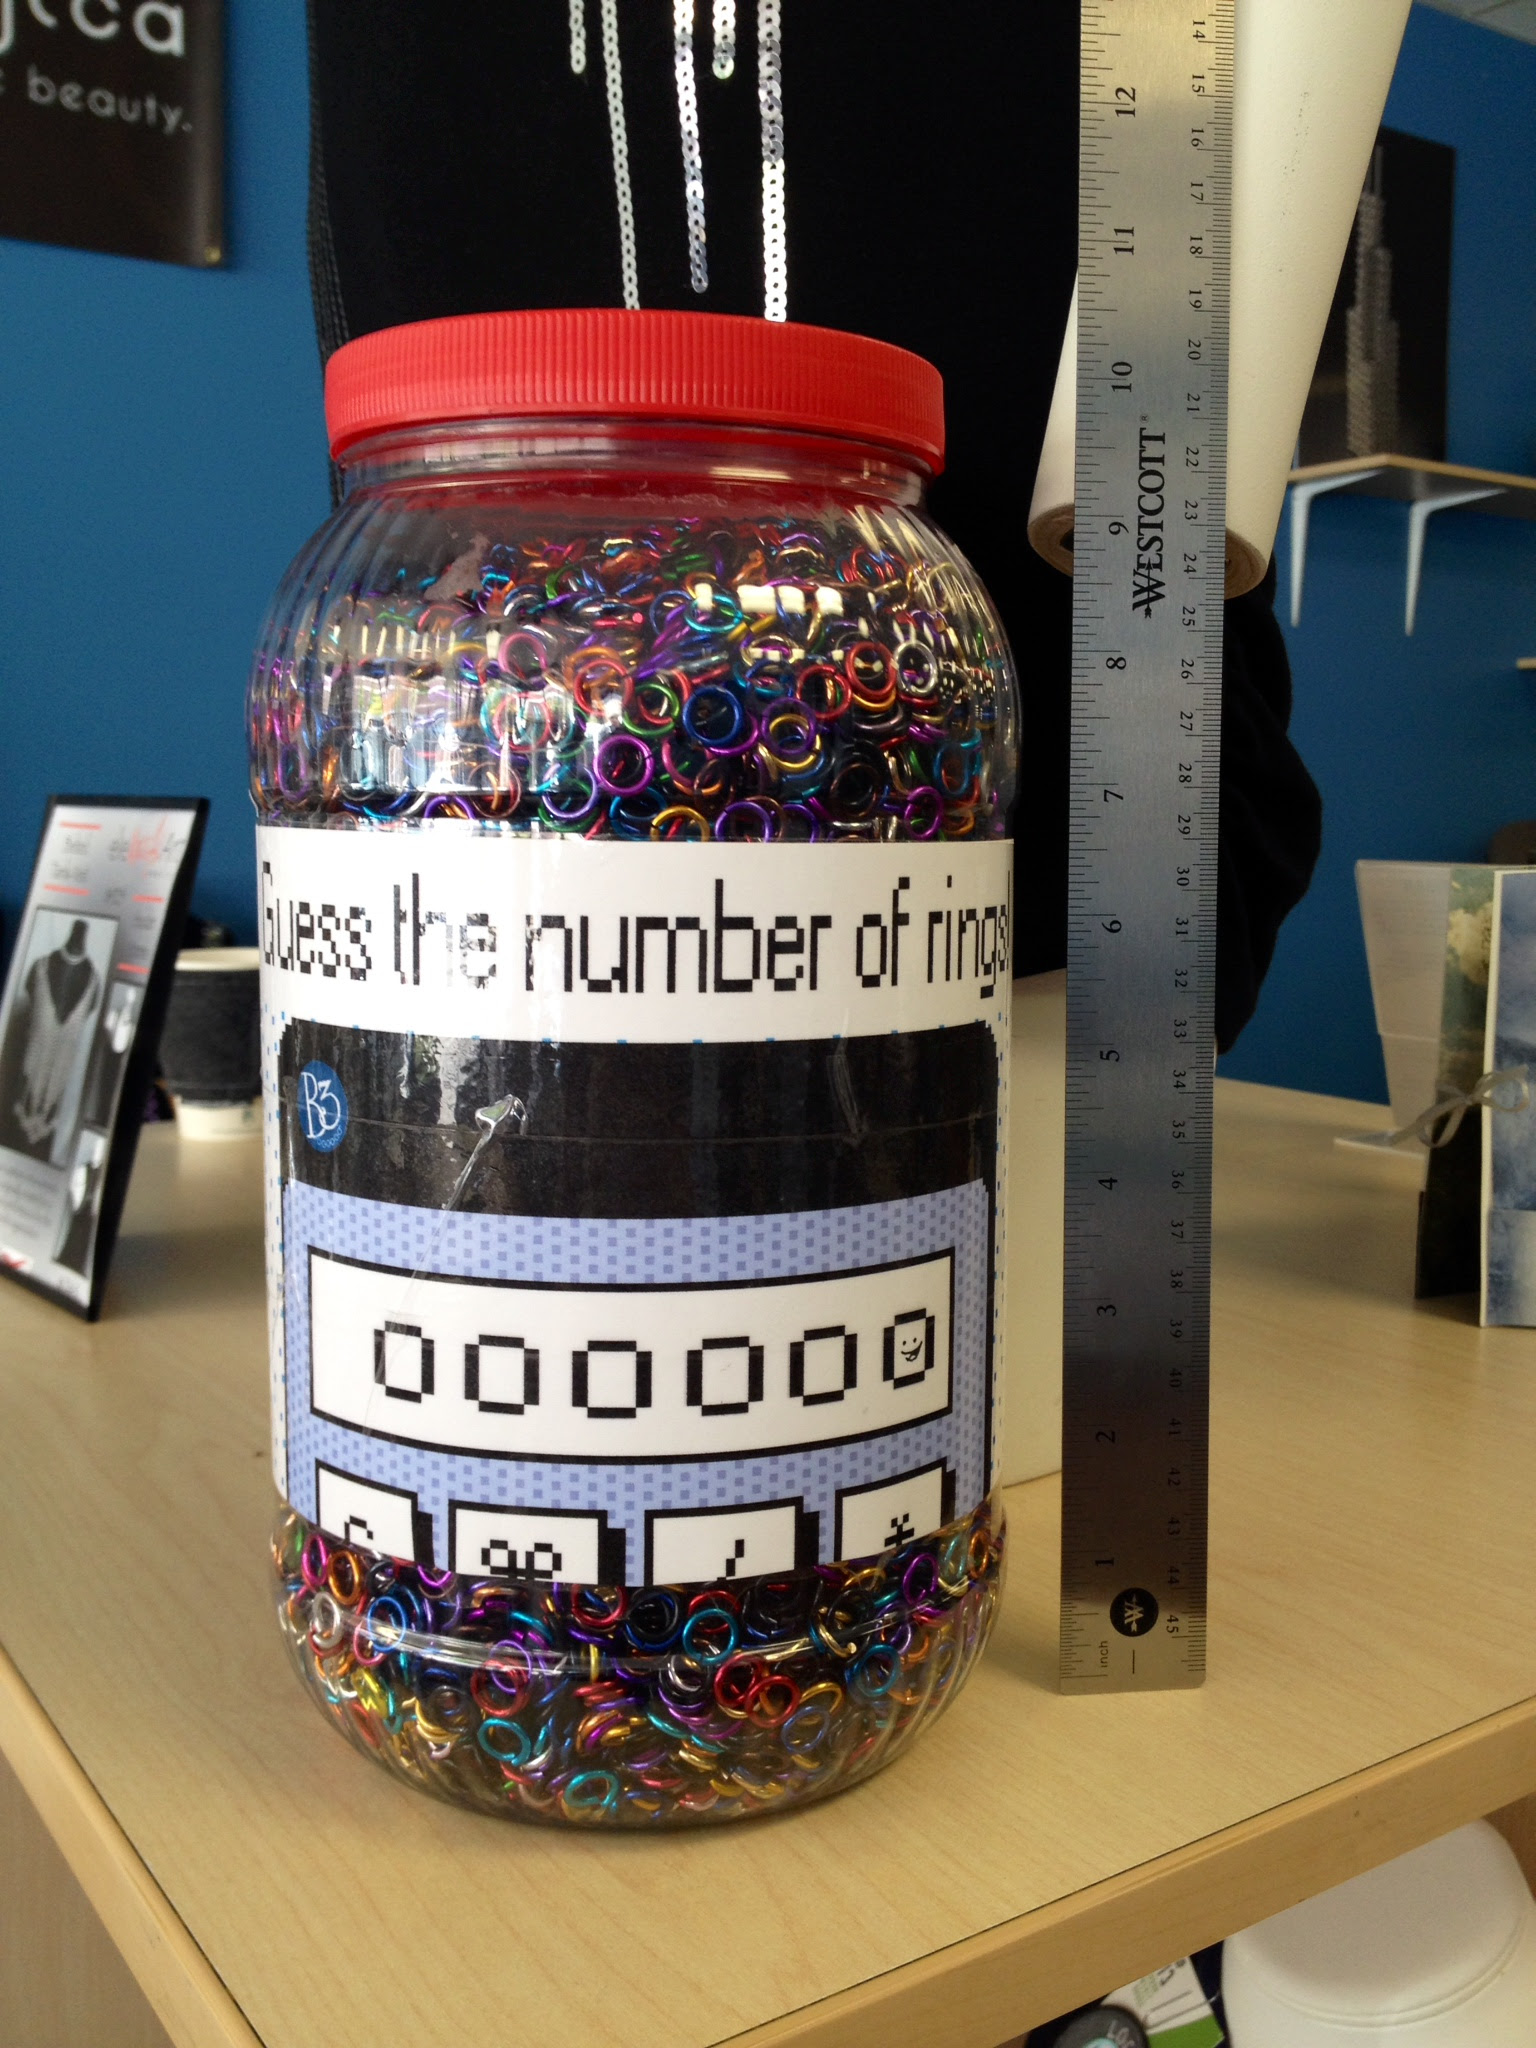 Contest Time Guess How Many Jump Rings Are In The Jar